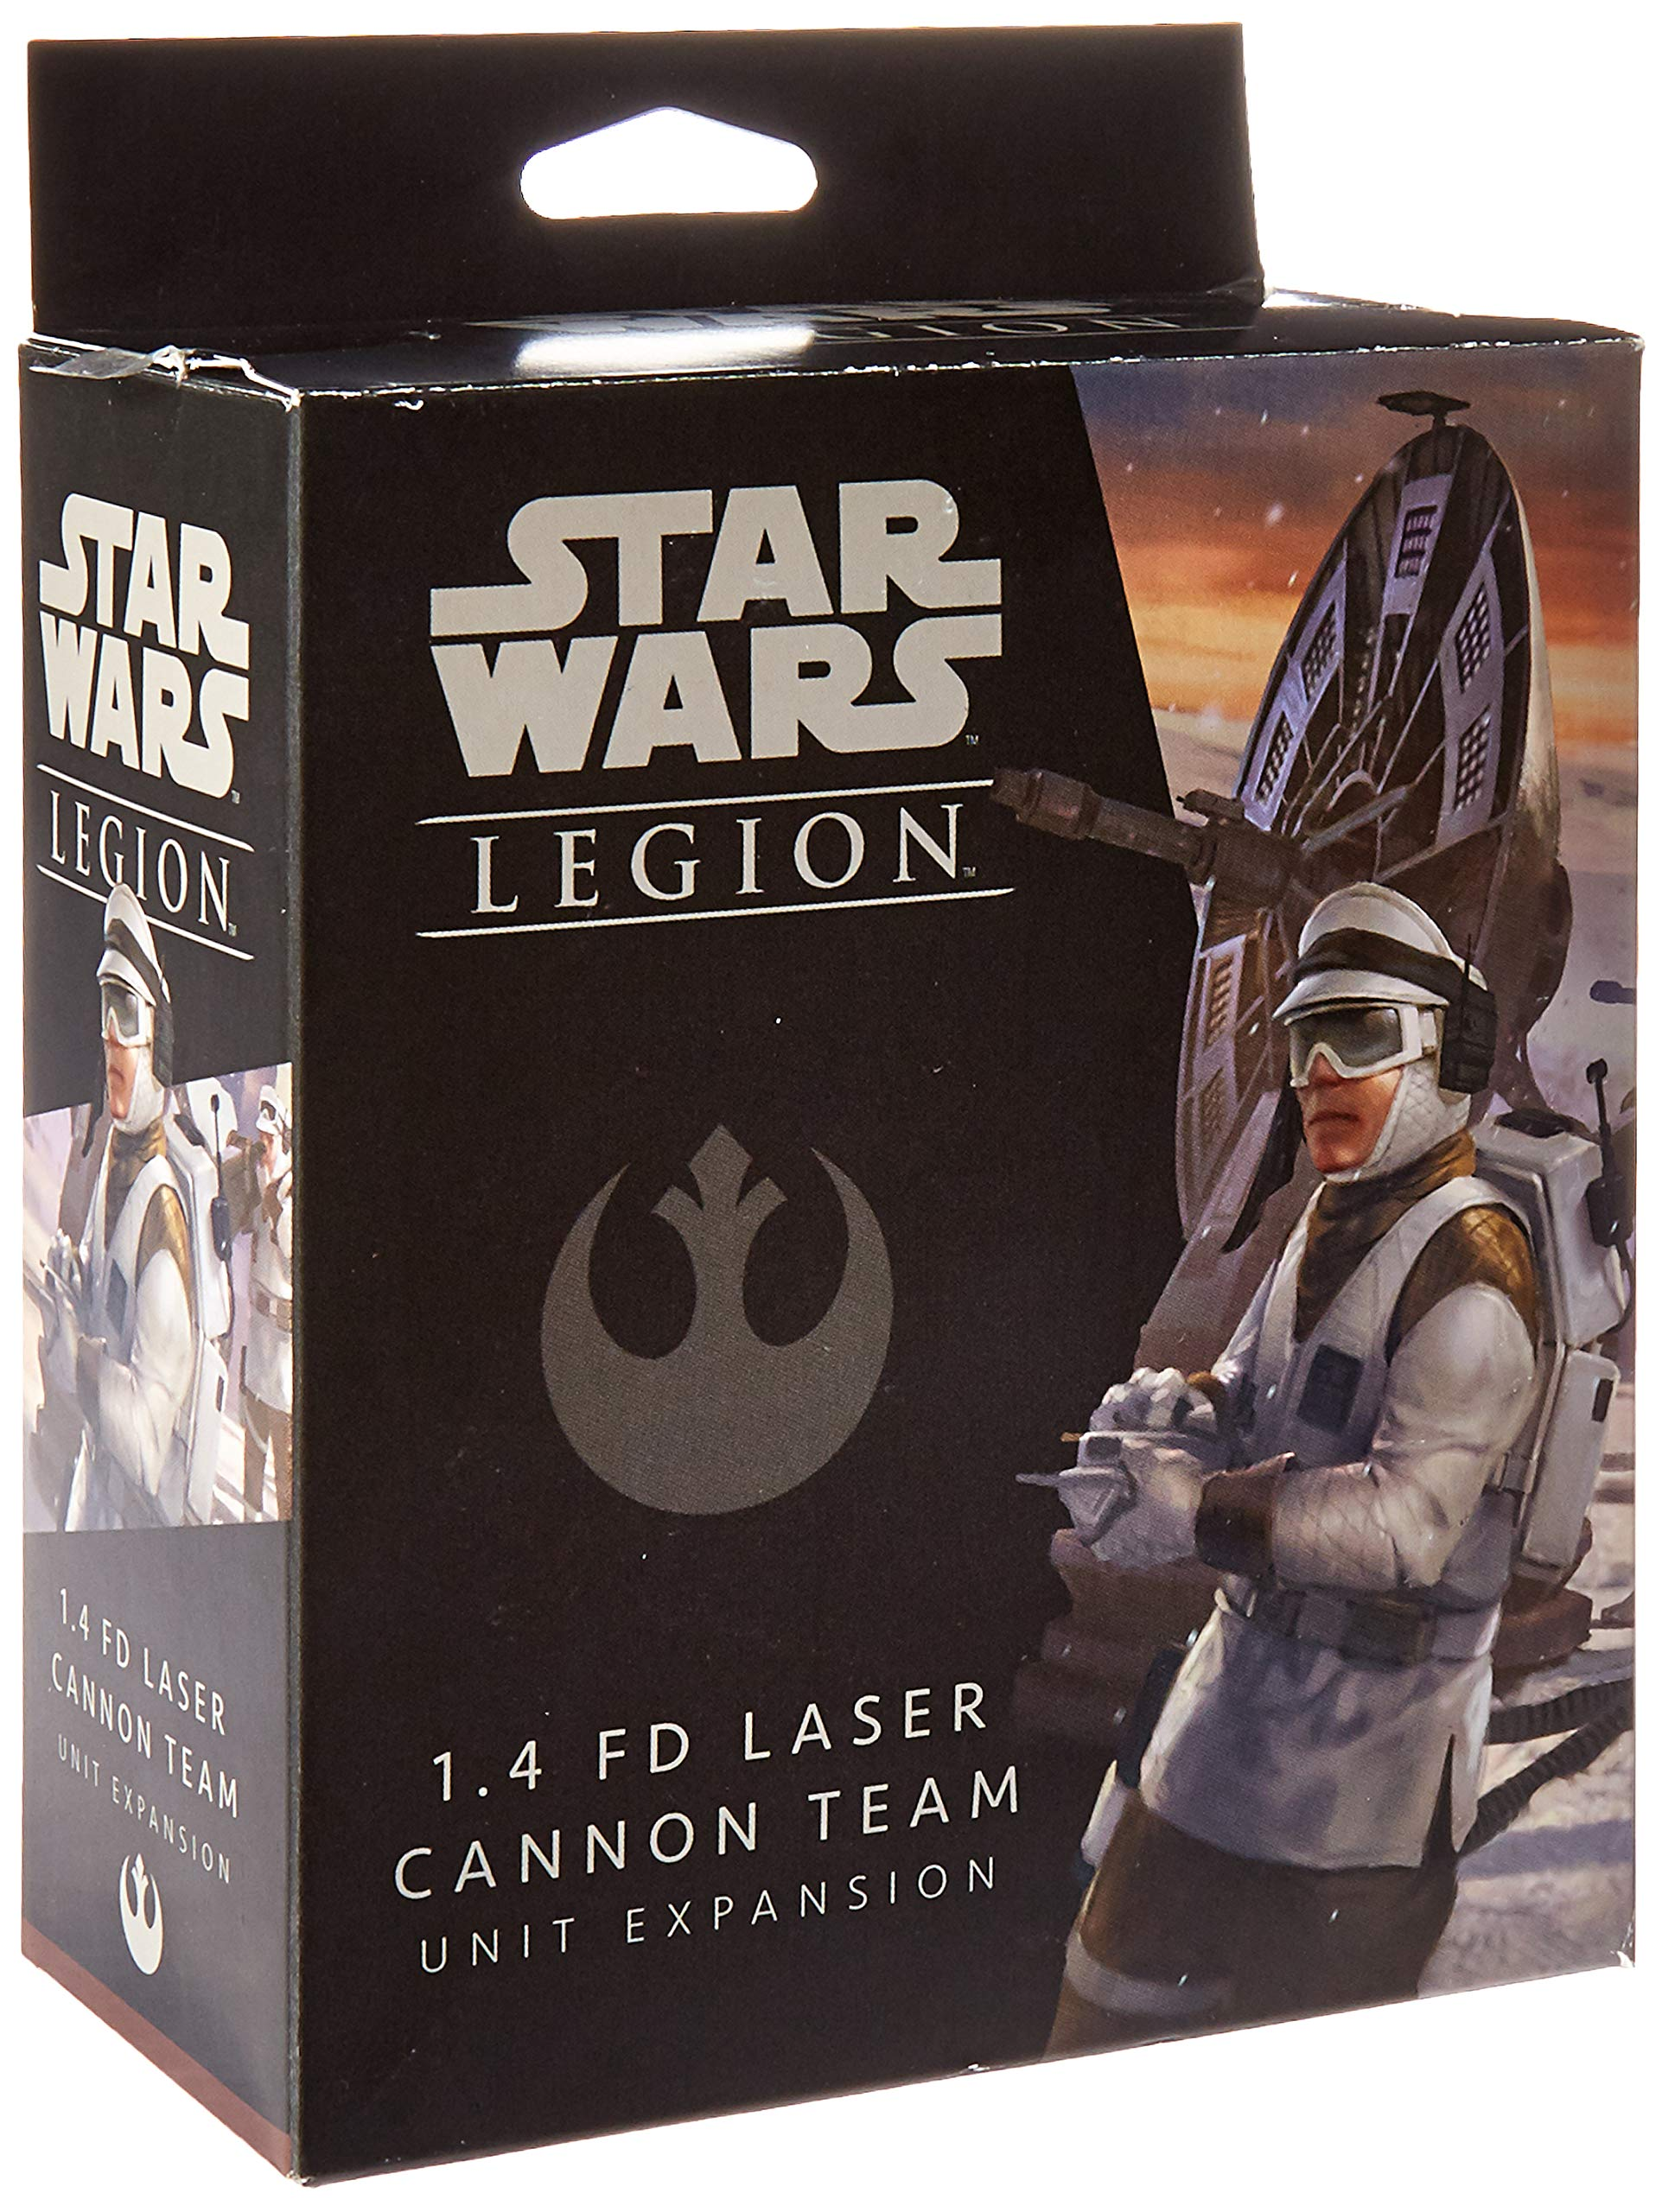 Star Wars: Legion - 1.4 FD Laser Cannon Team